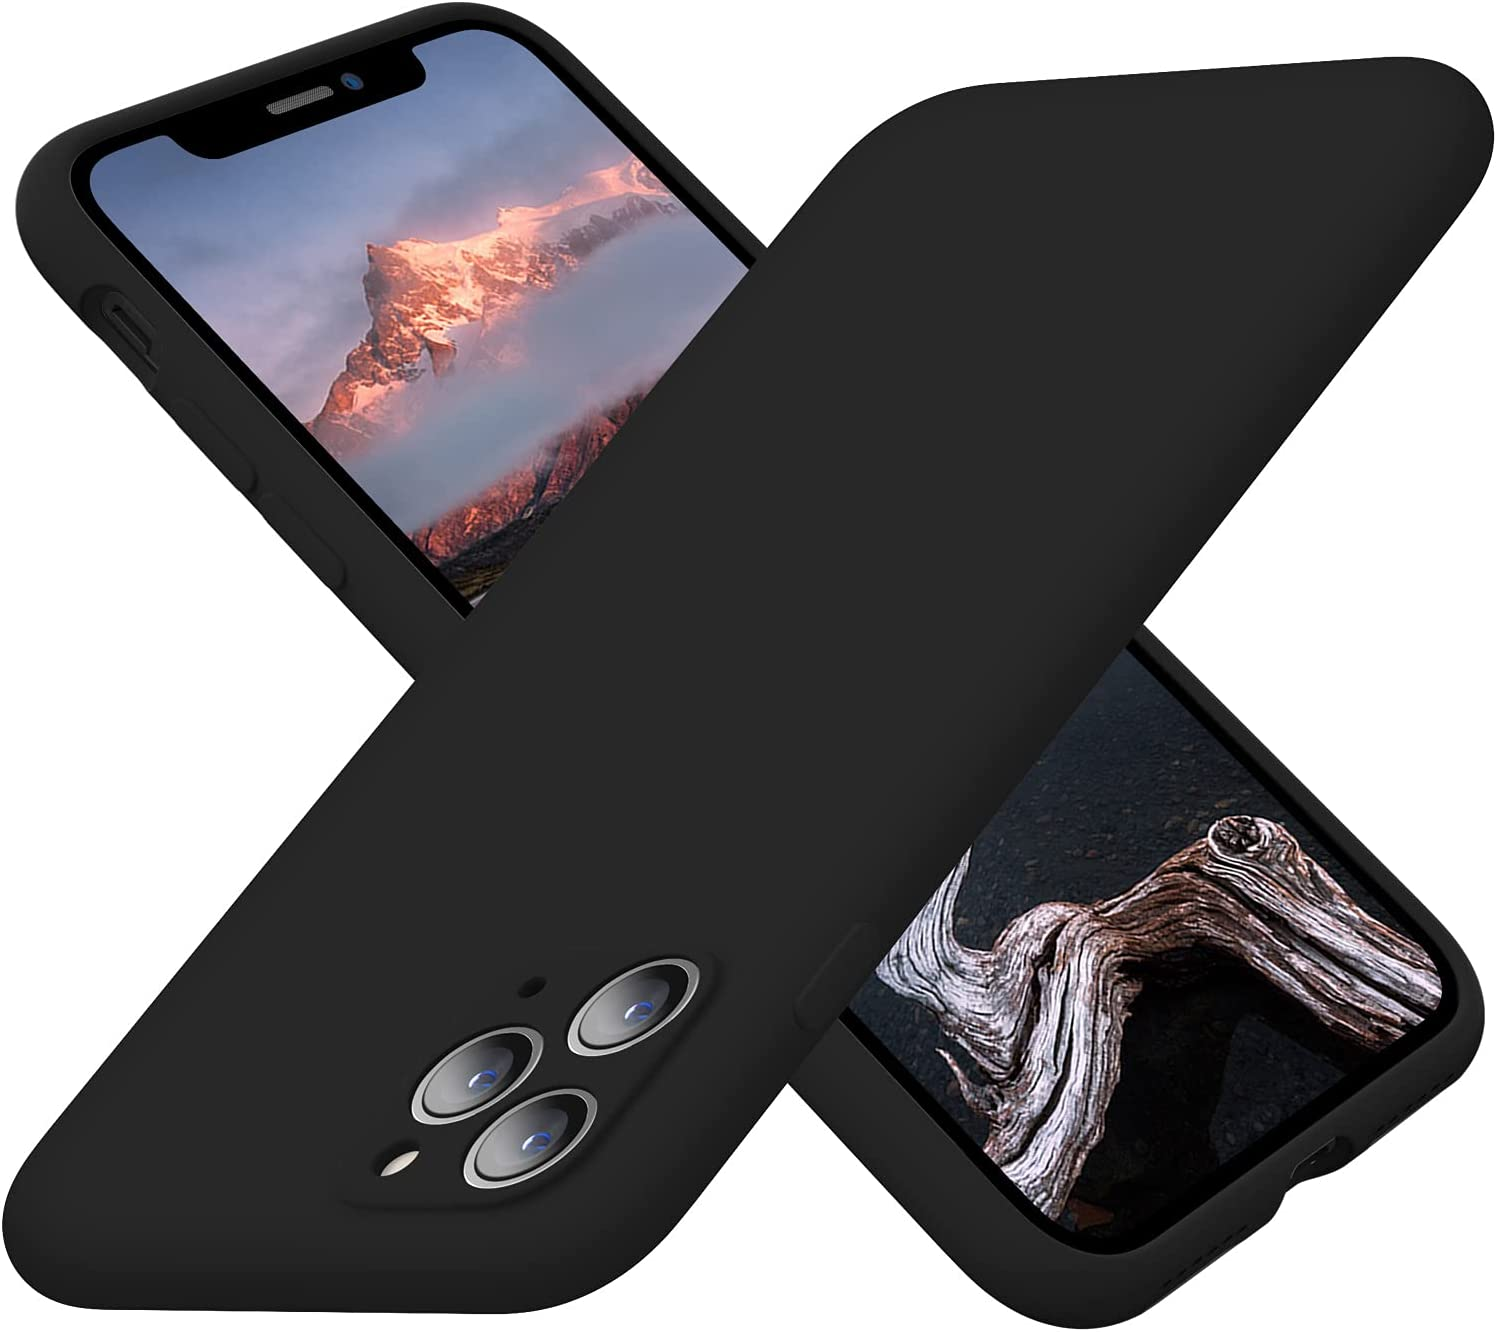 Cordking iPhone 11 Pro Max Cases, Silicone Ultra Slim Shockproof Phone Case with Soft Anti-Scratch Microfiber Lining, [Enhanced Camera Protection], 6.5 inch, Black